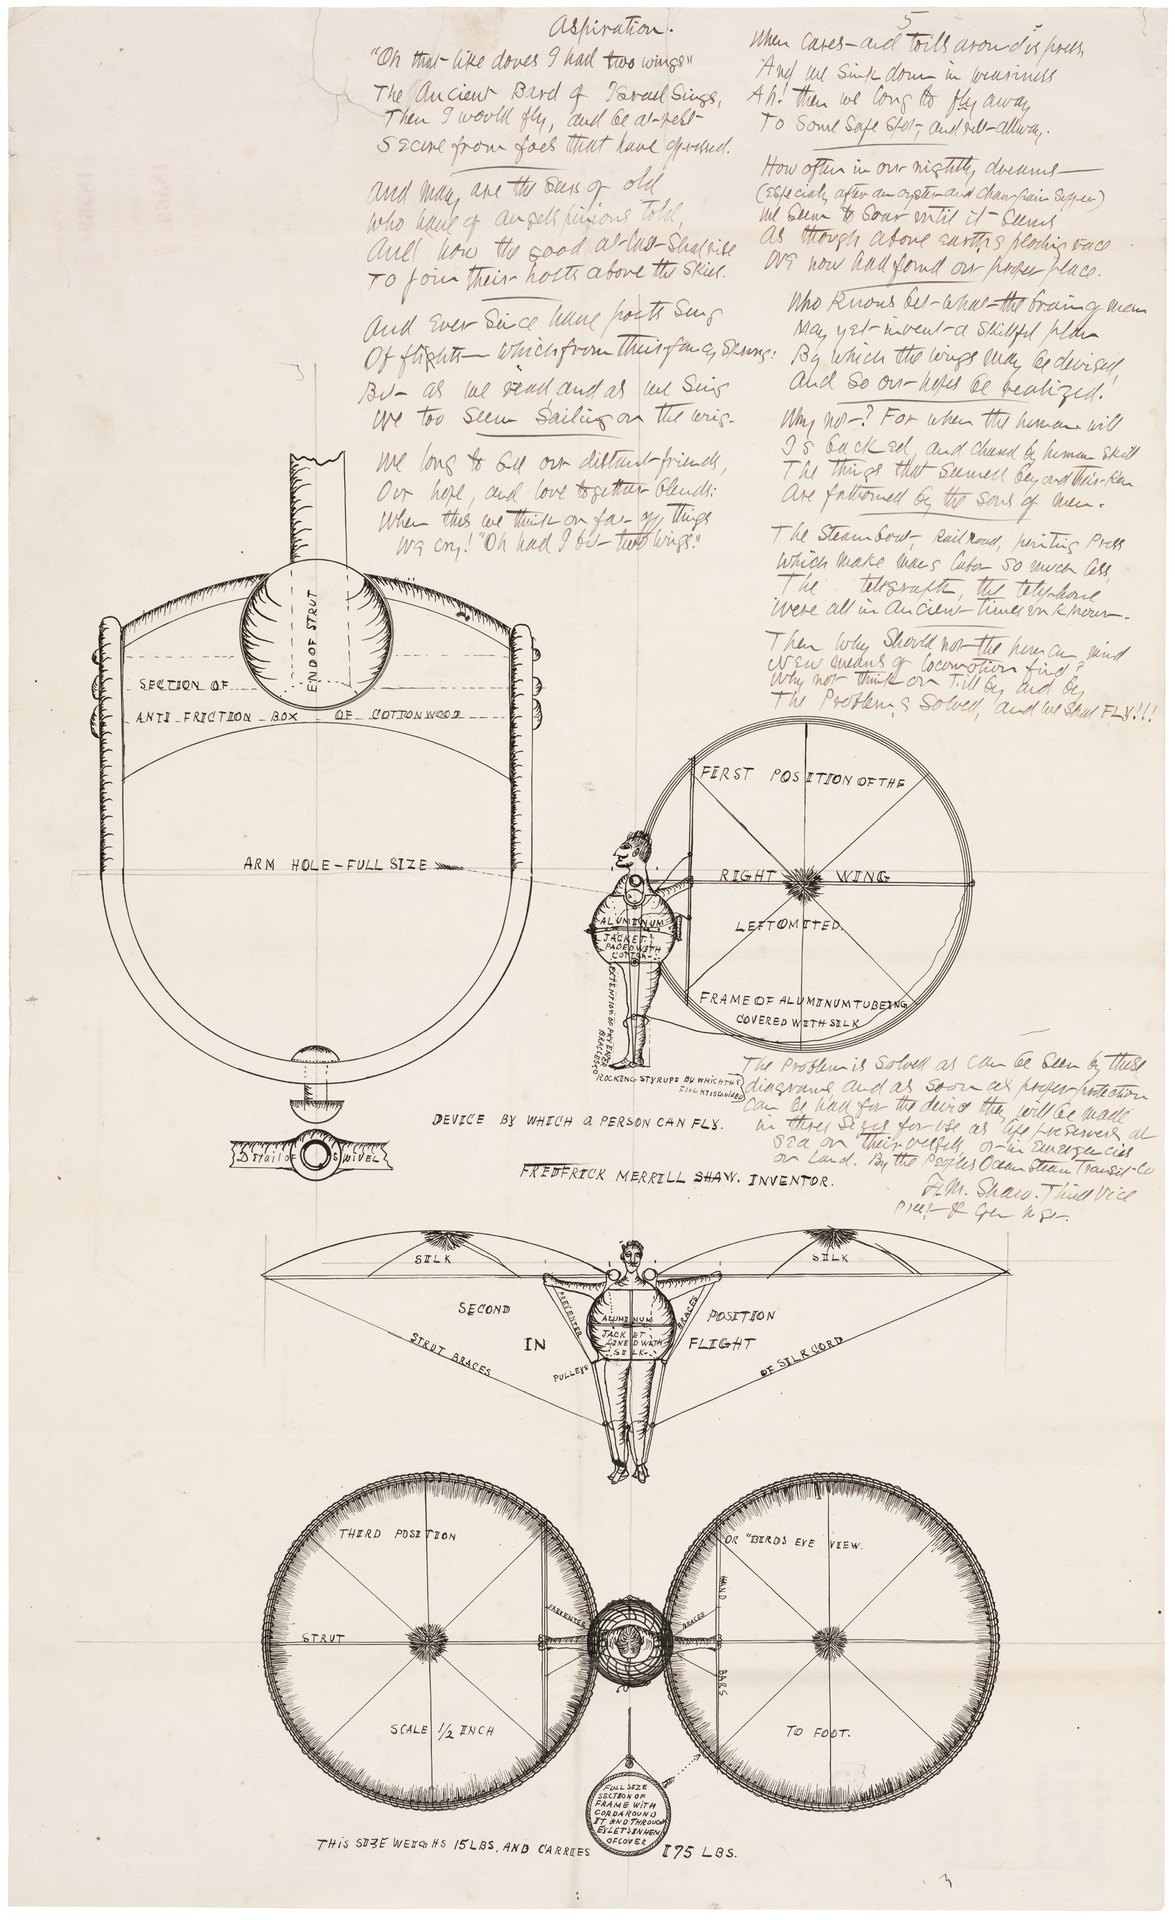 Drawing of a Device by Which a Person Can Fly Inventor (and aspiring poet?) Fredfrick (sic) Merrill Shaw sent this drawing of a handheld flying machine to President Theodore Roosevelt on September 18, 1902. via DocsTeach